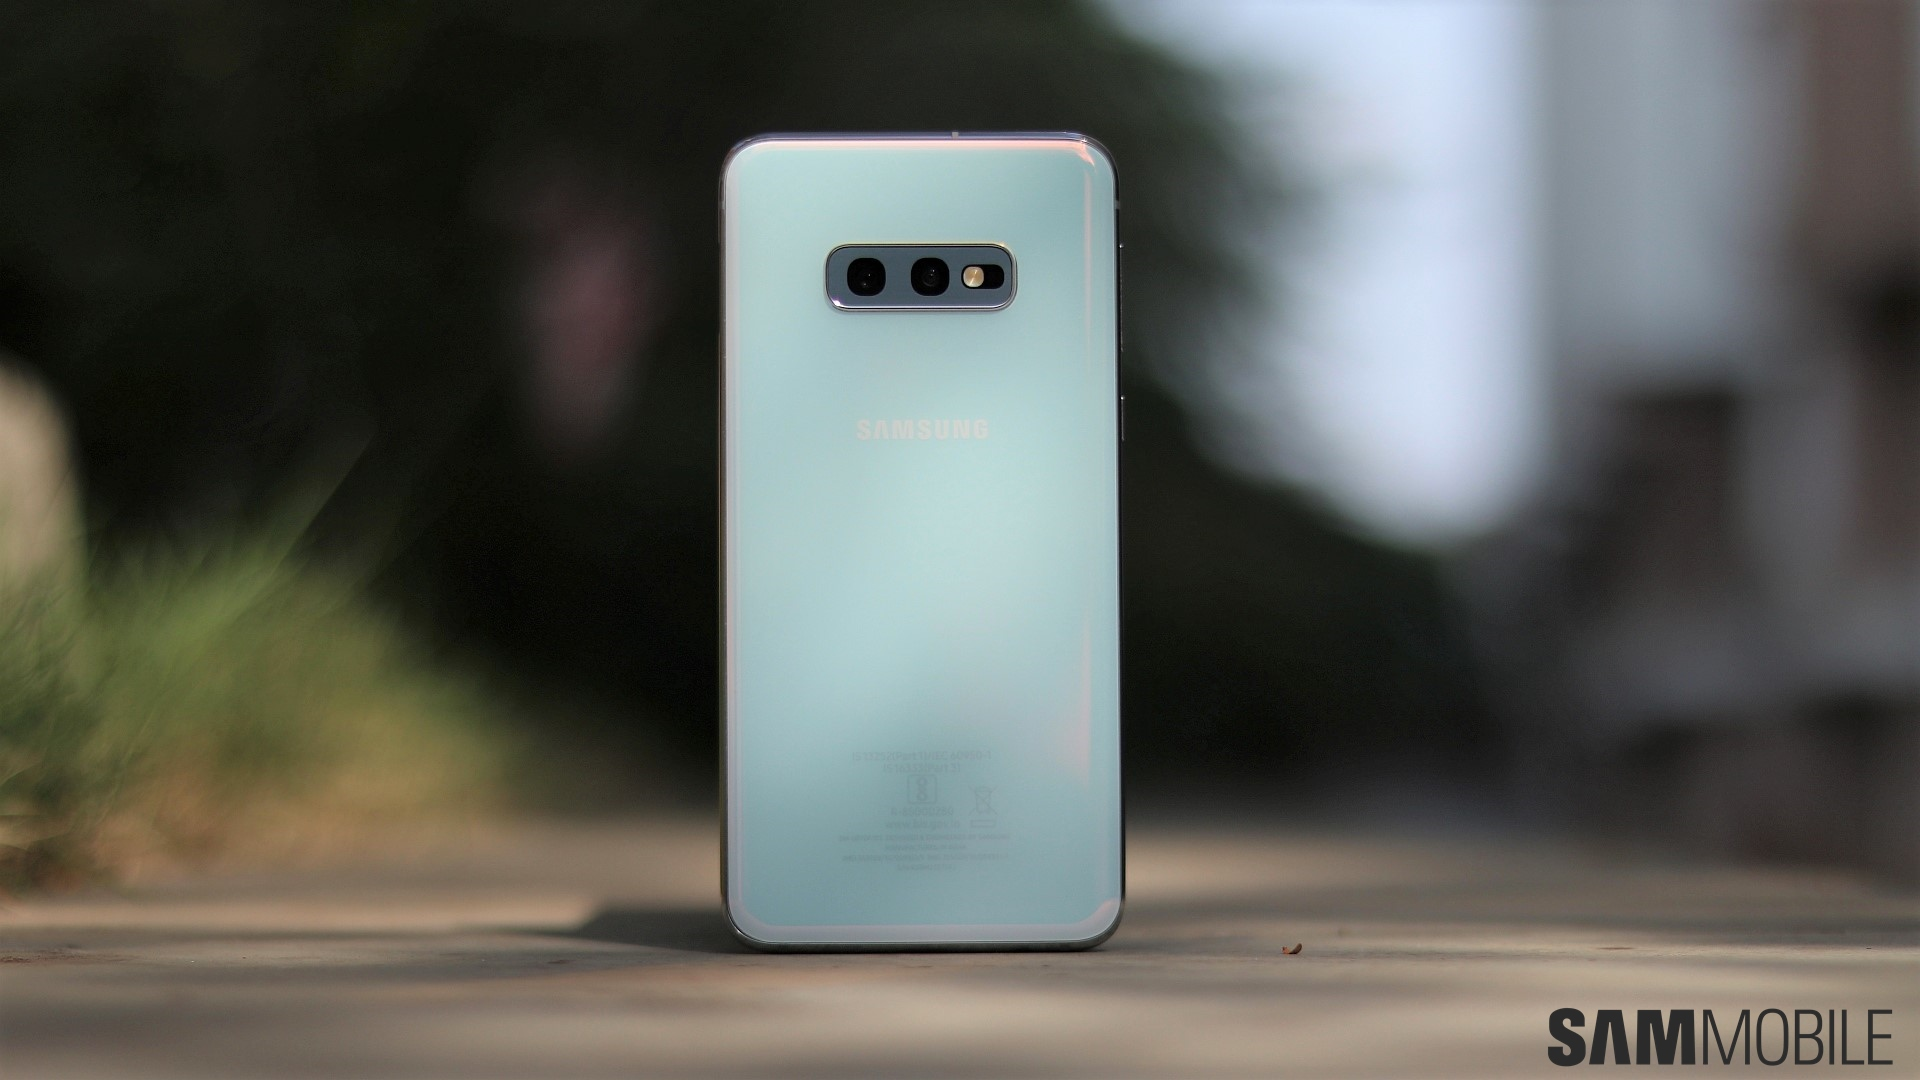 Samsung Galaxy S10e review: Making compact flagships great